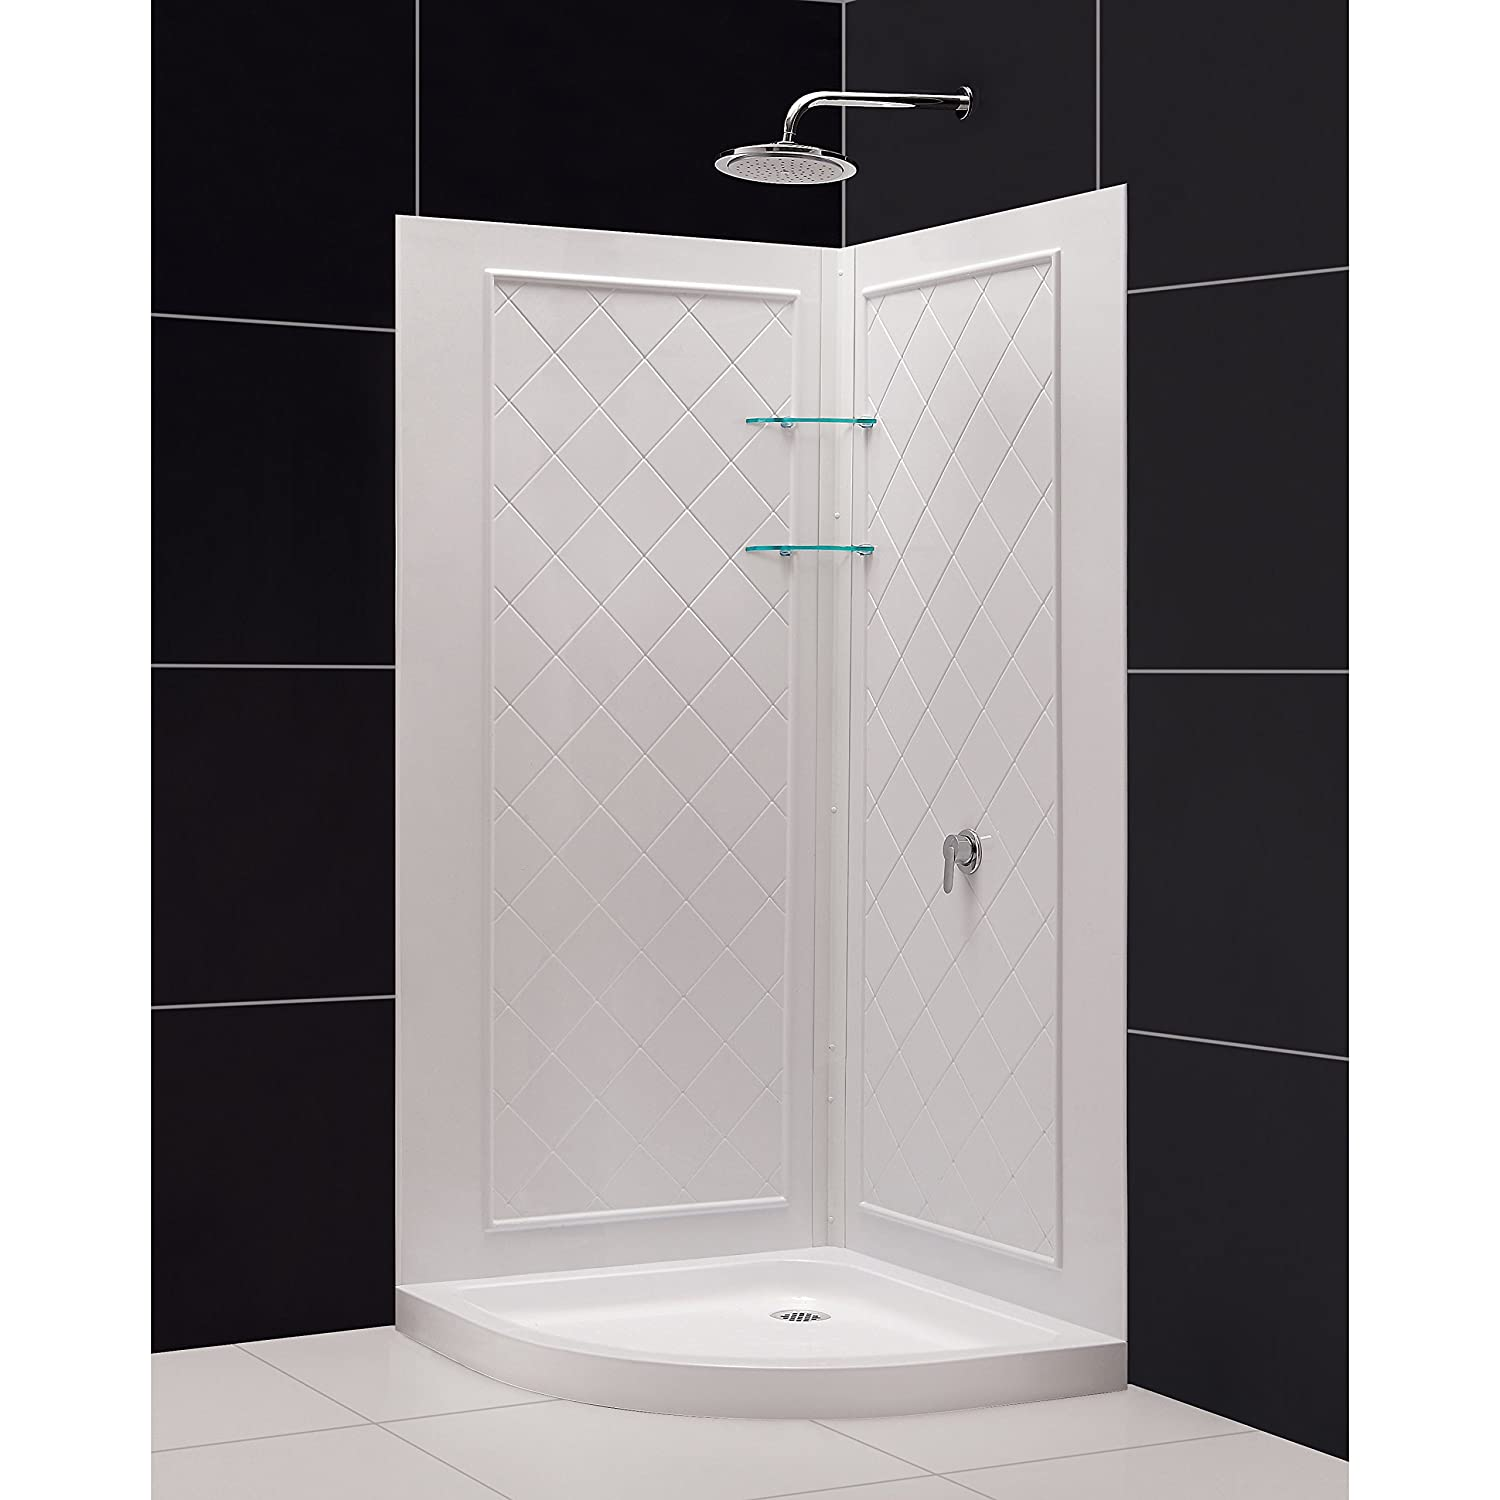 36 x 36 corner shower kit. dreamline prime 36 in. d x w kit, with corner sliding shower enclosure in chrome, white acrylic base and backwalls - doors amazon.com kit o